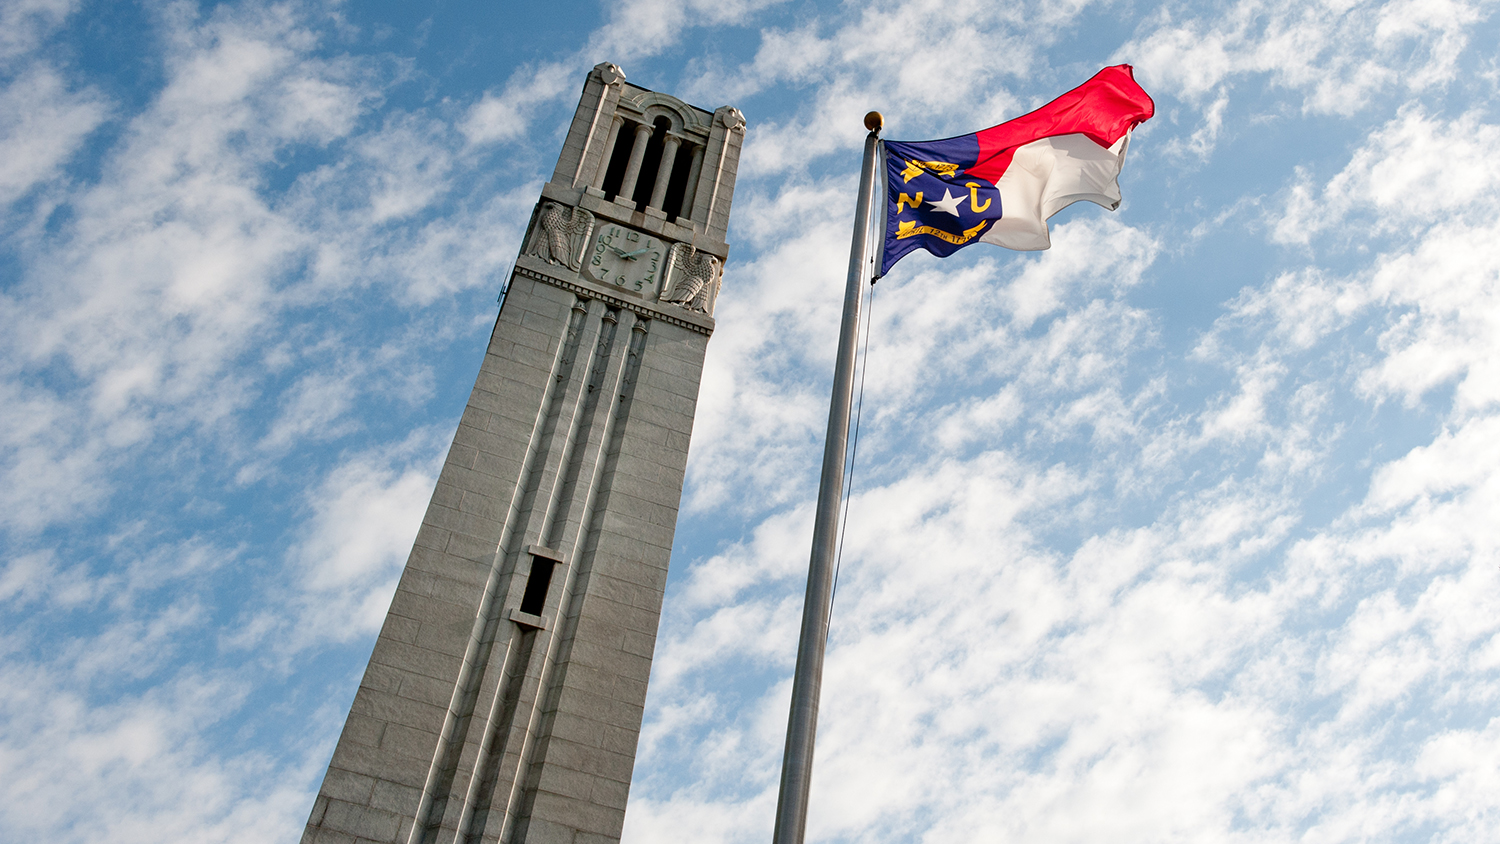 NC State's Memorial Belltower and North Carolina state flag